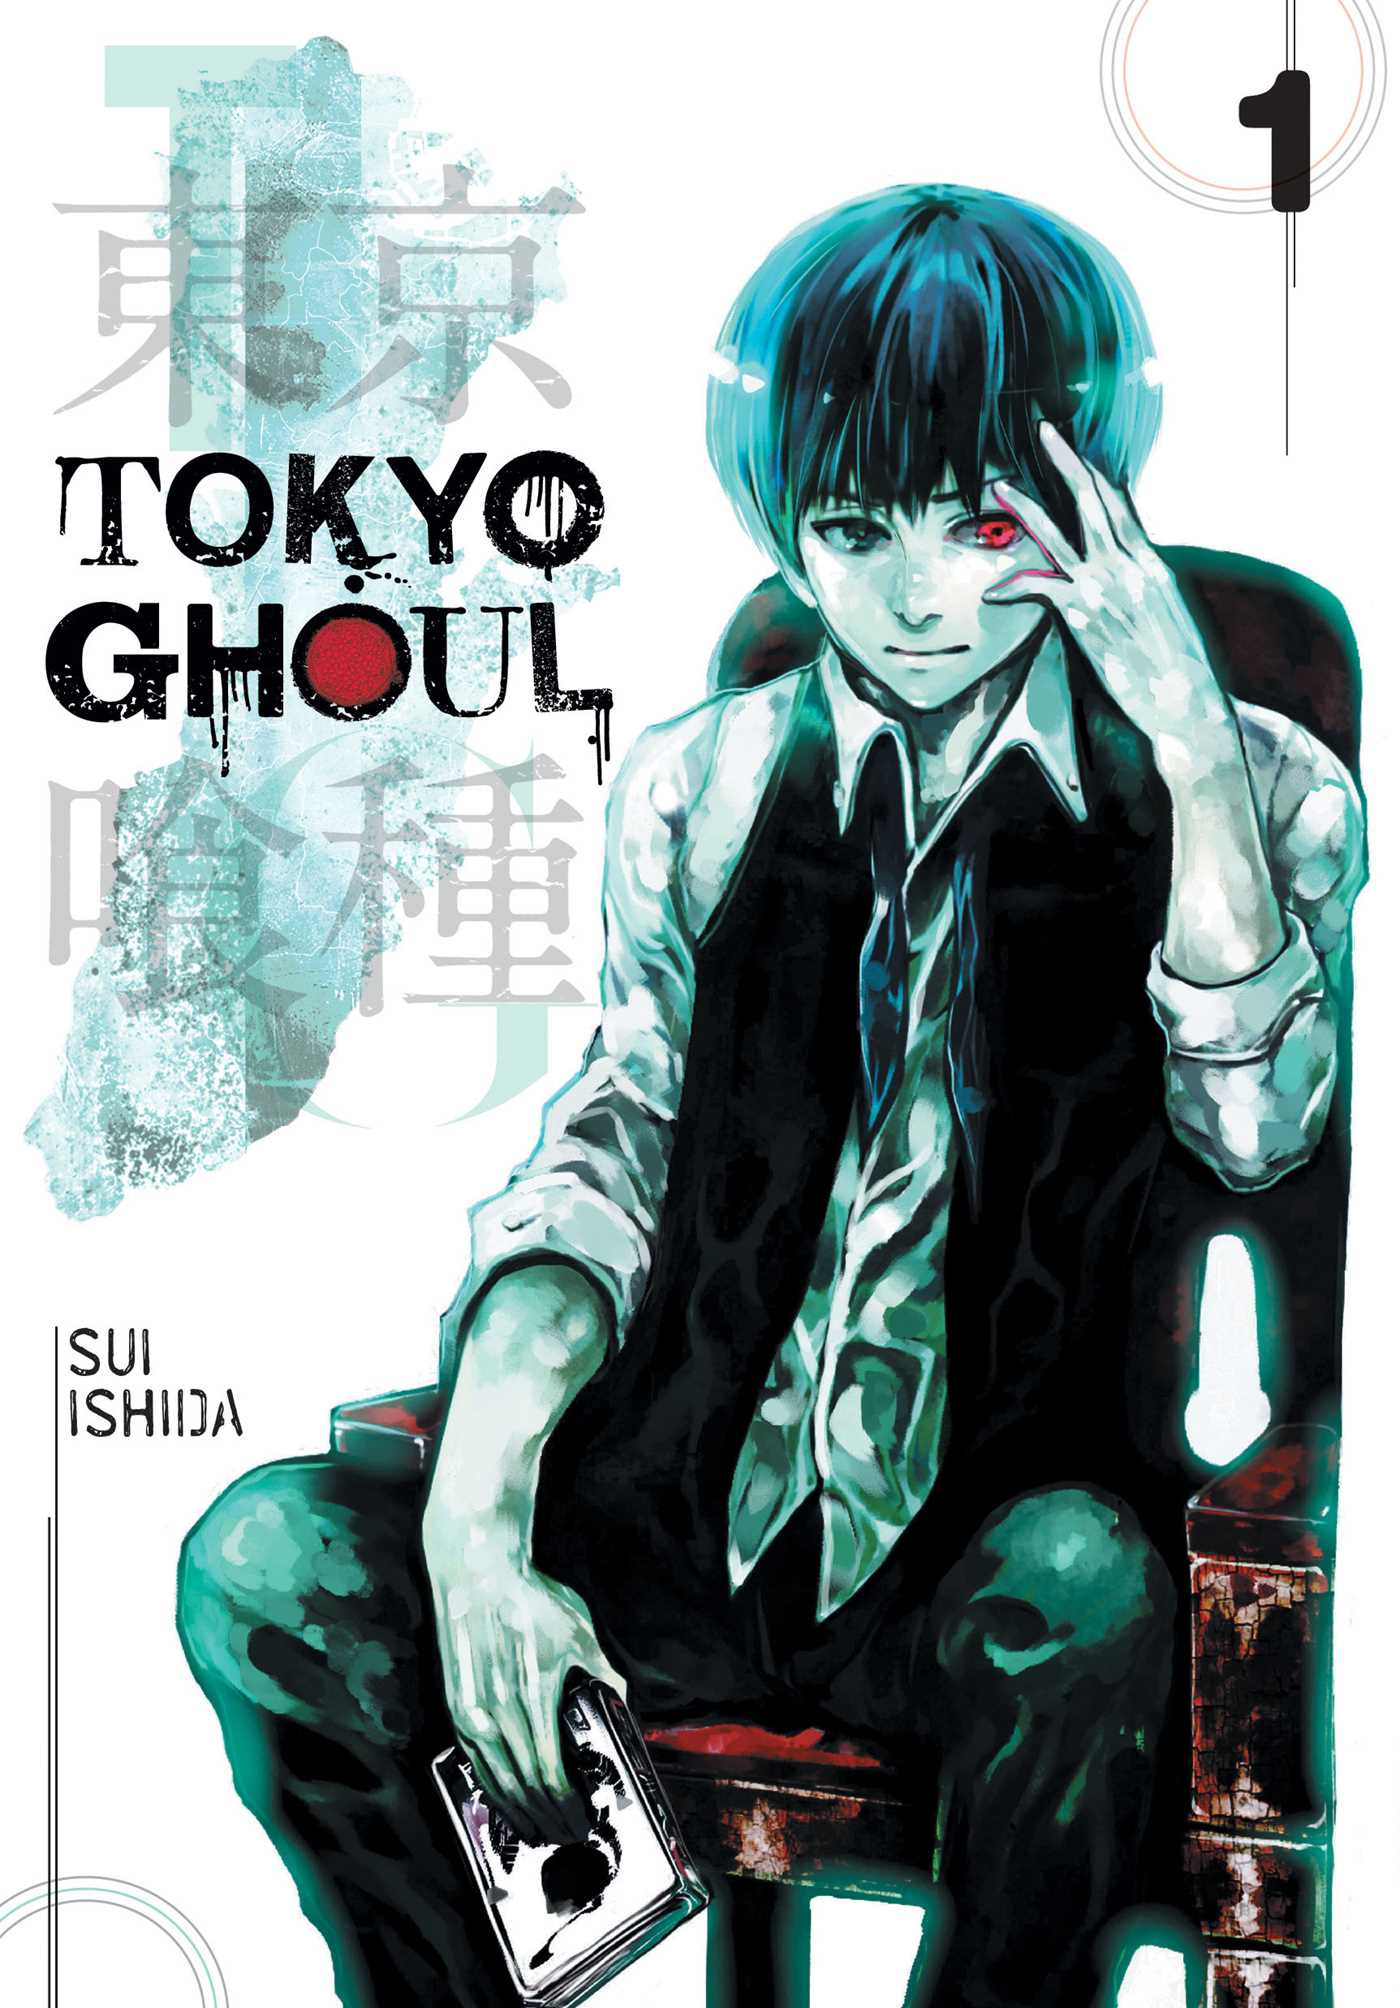 Tokyo Ghoul, Vol  1 | Book by Sui Ishida | Official